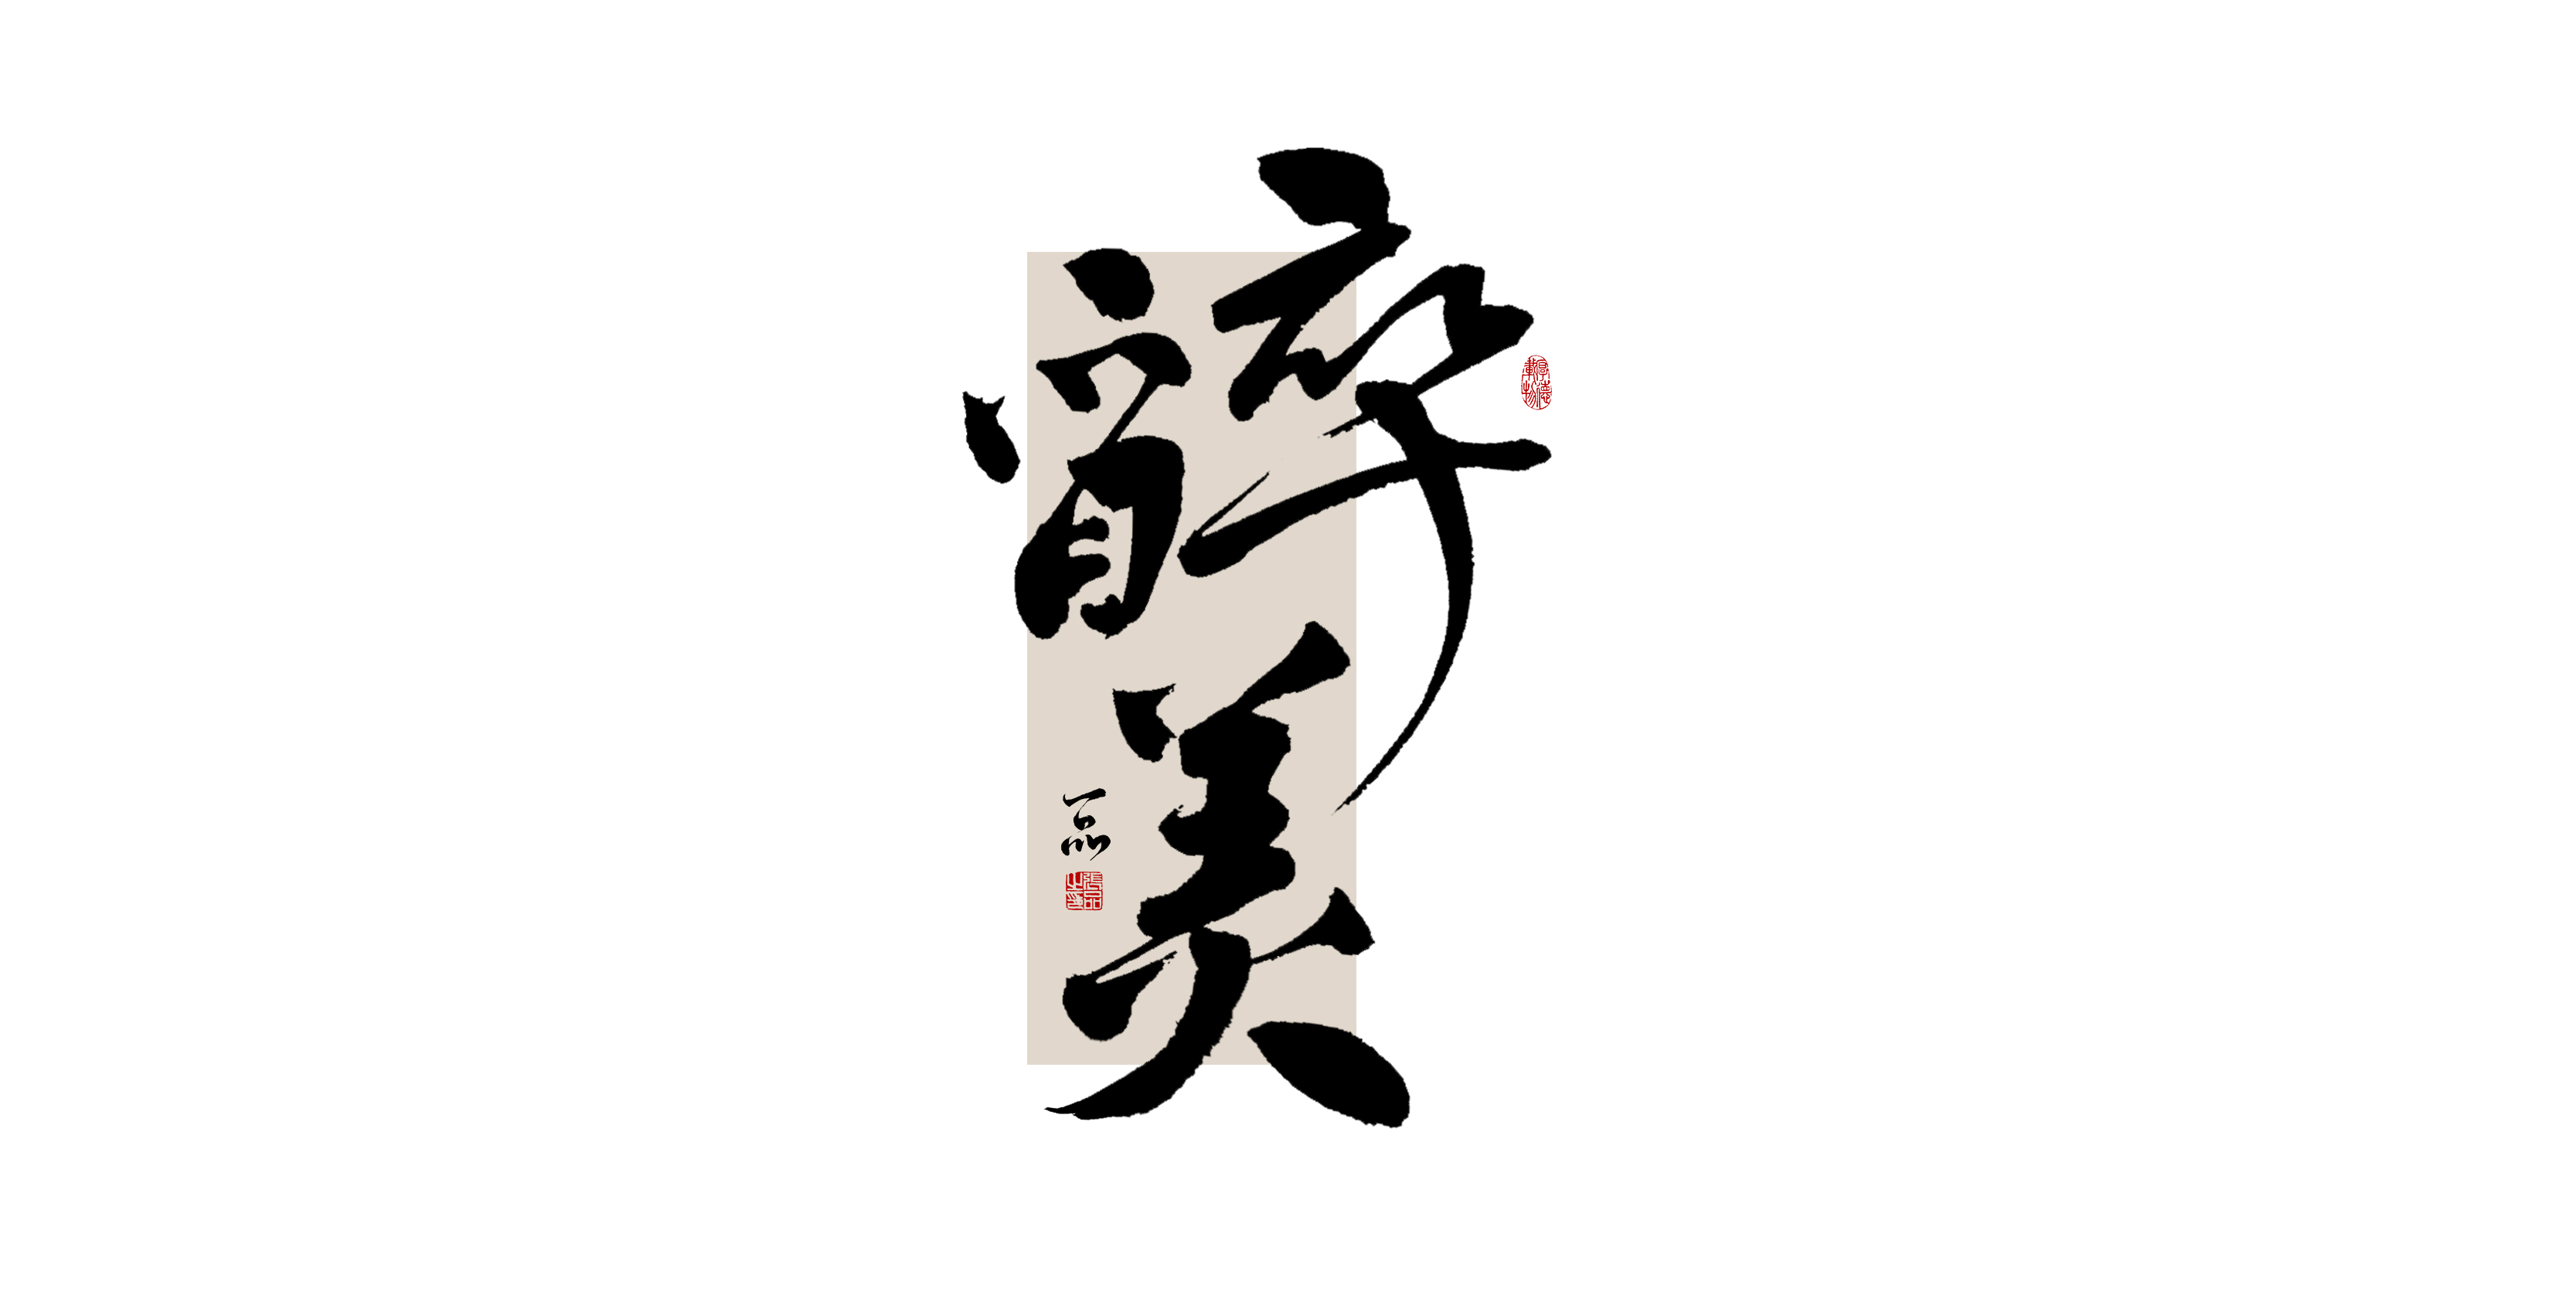 9P Collection of the latest Chinese font design schemes in 2021 #.143